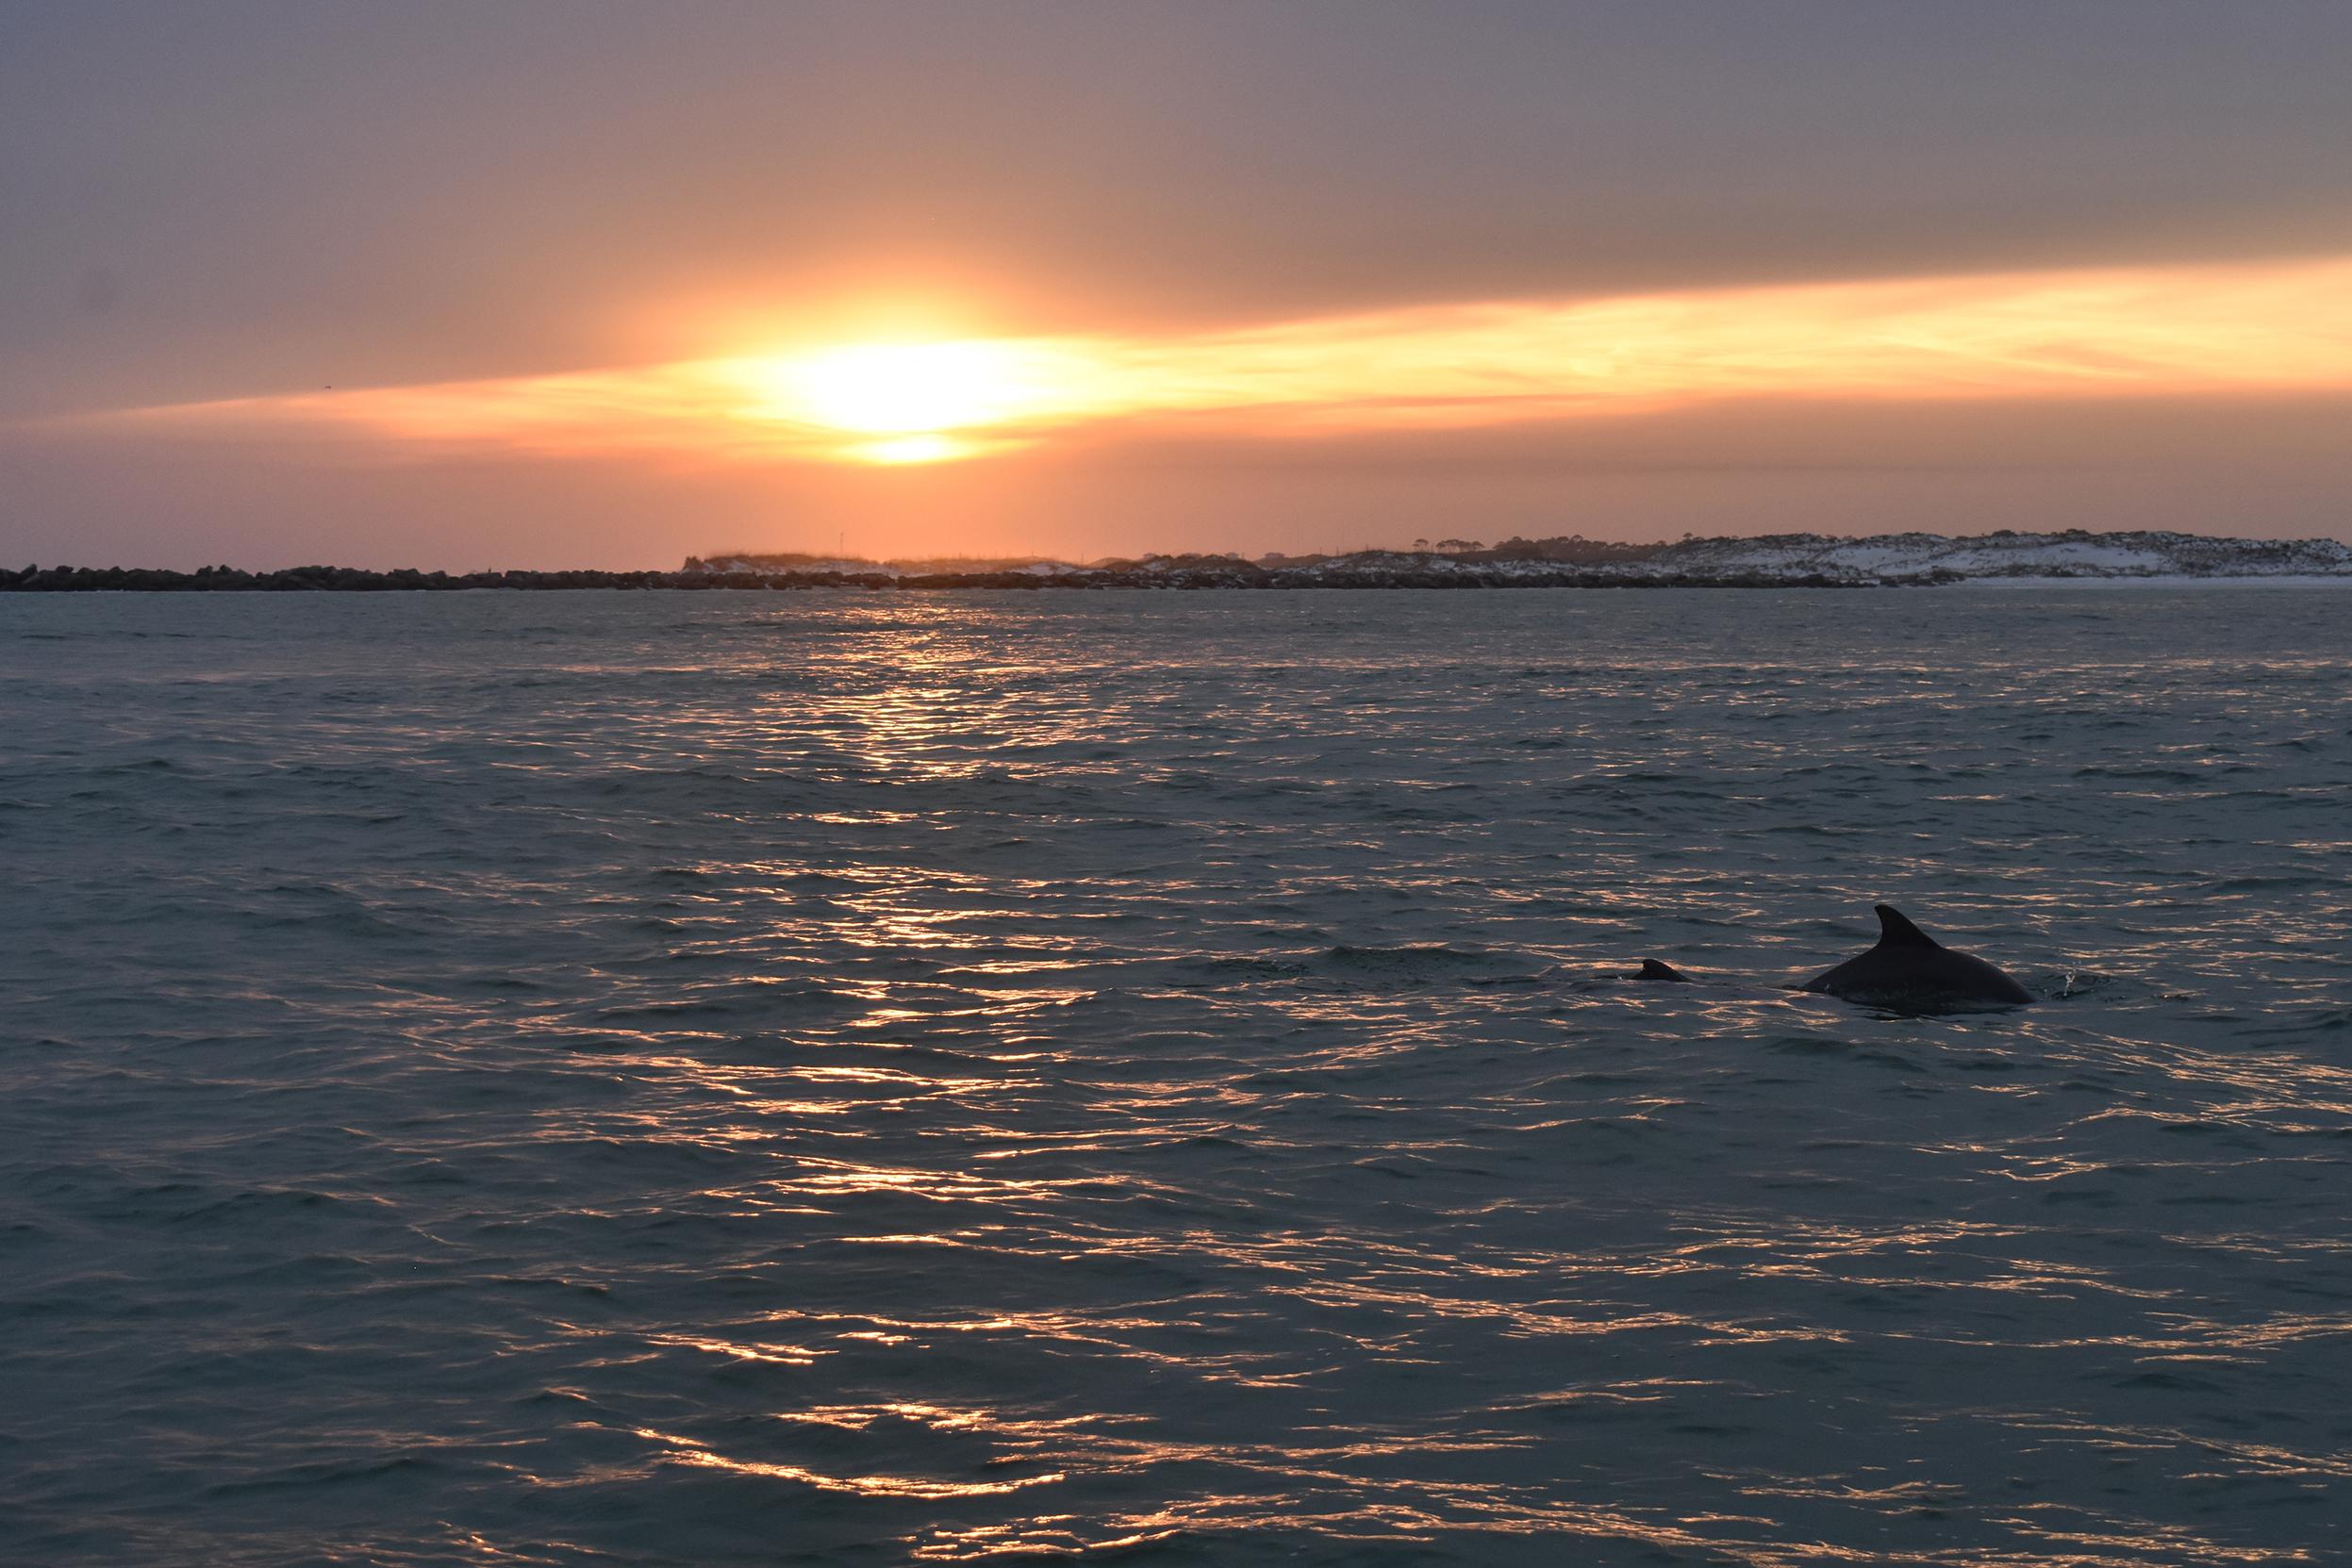 The sun sets over water with dunes in the background. A dolphin dorsal fin surfaces in the foreground